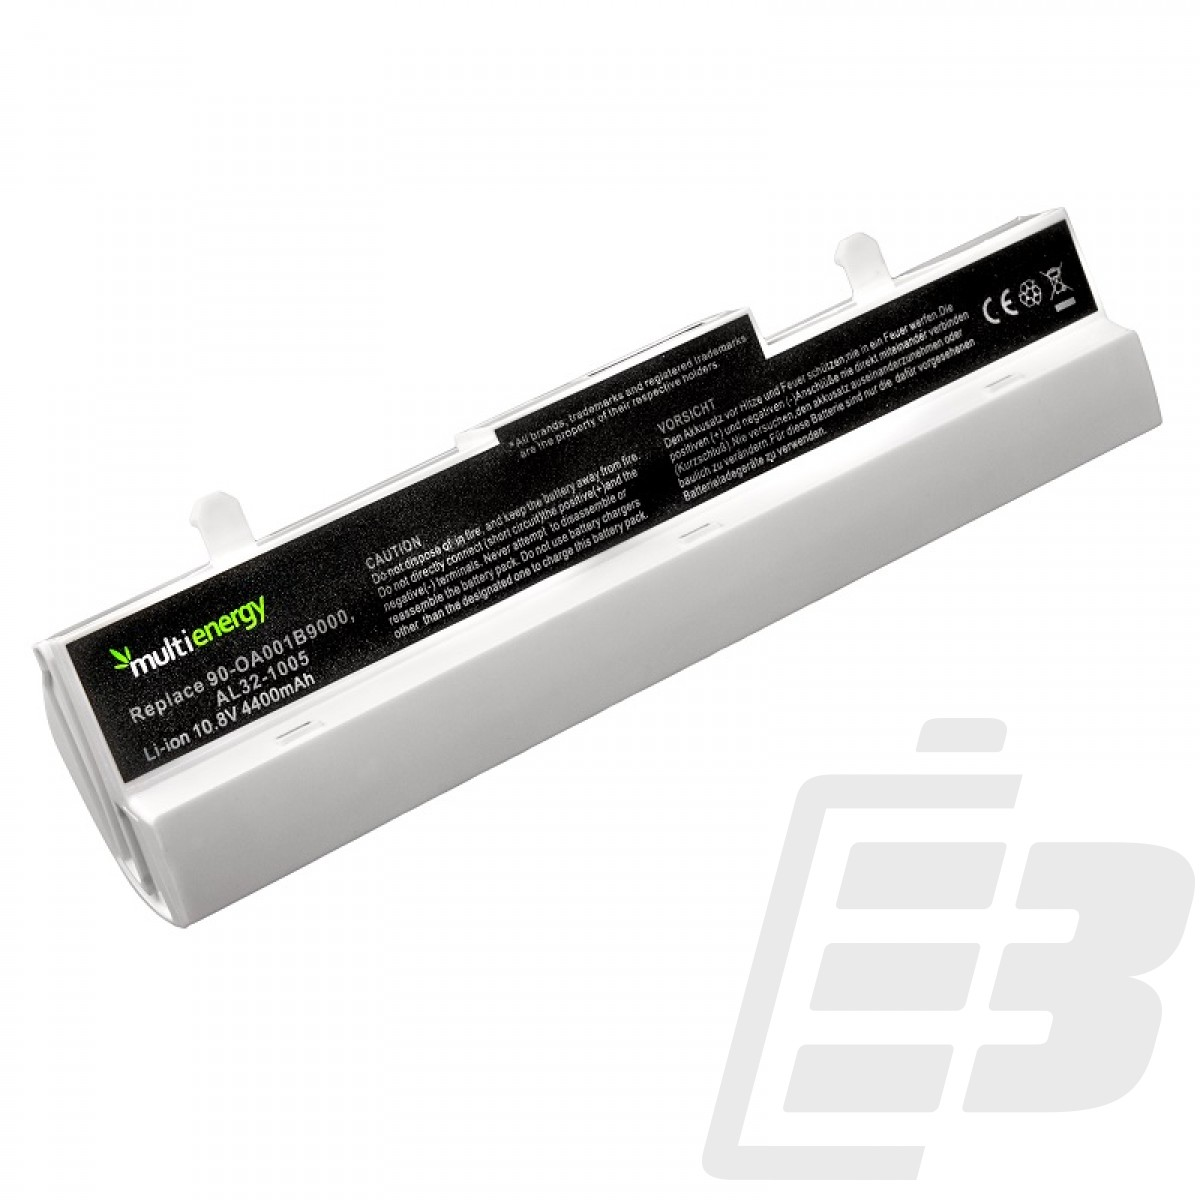 Laptop battery Asus Eee PC 1005 white_1